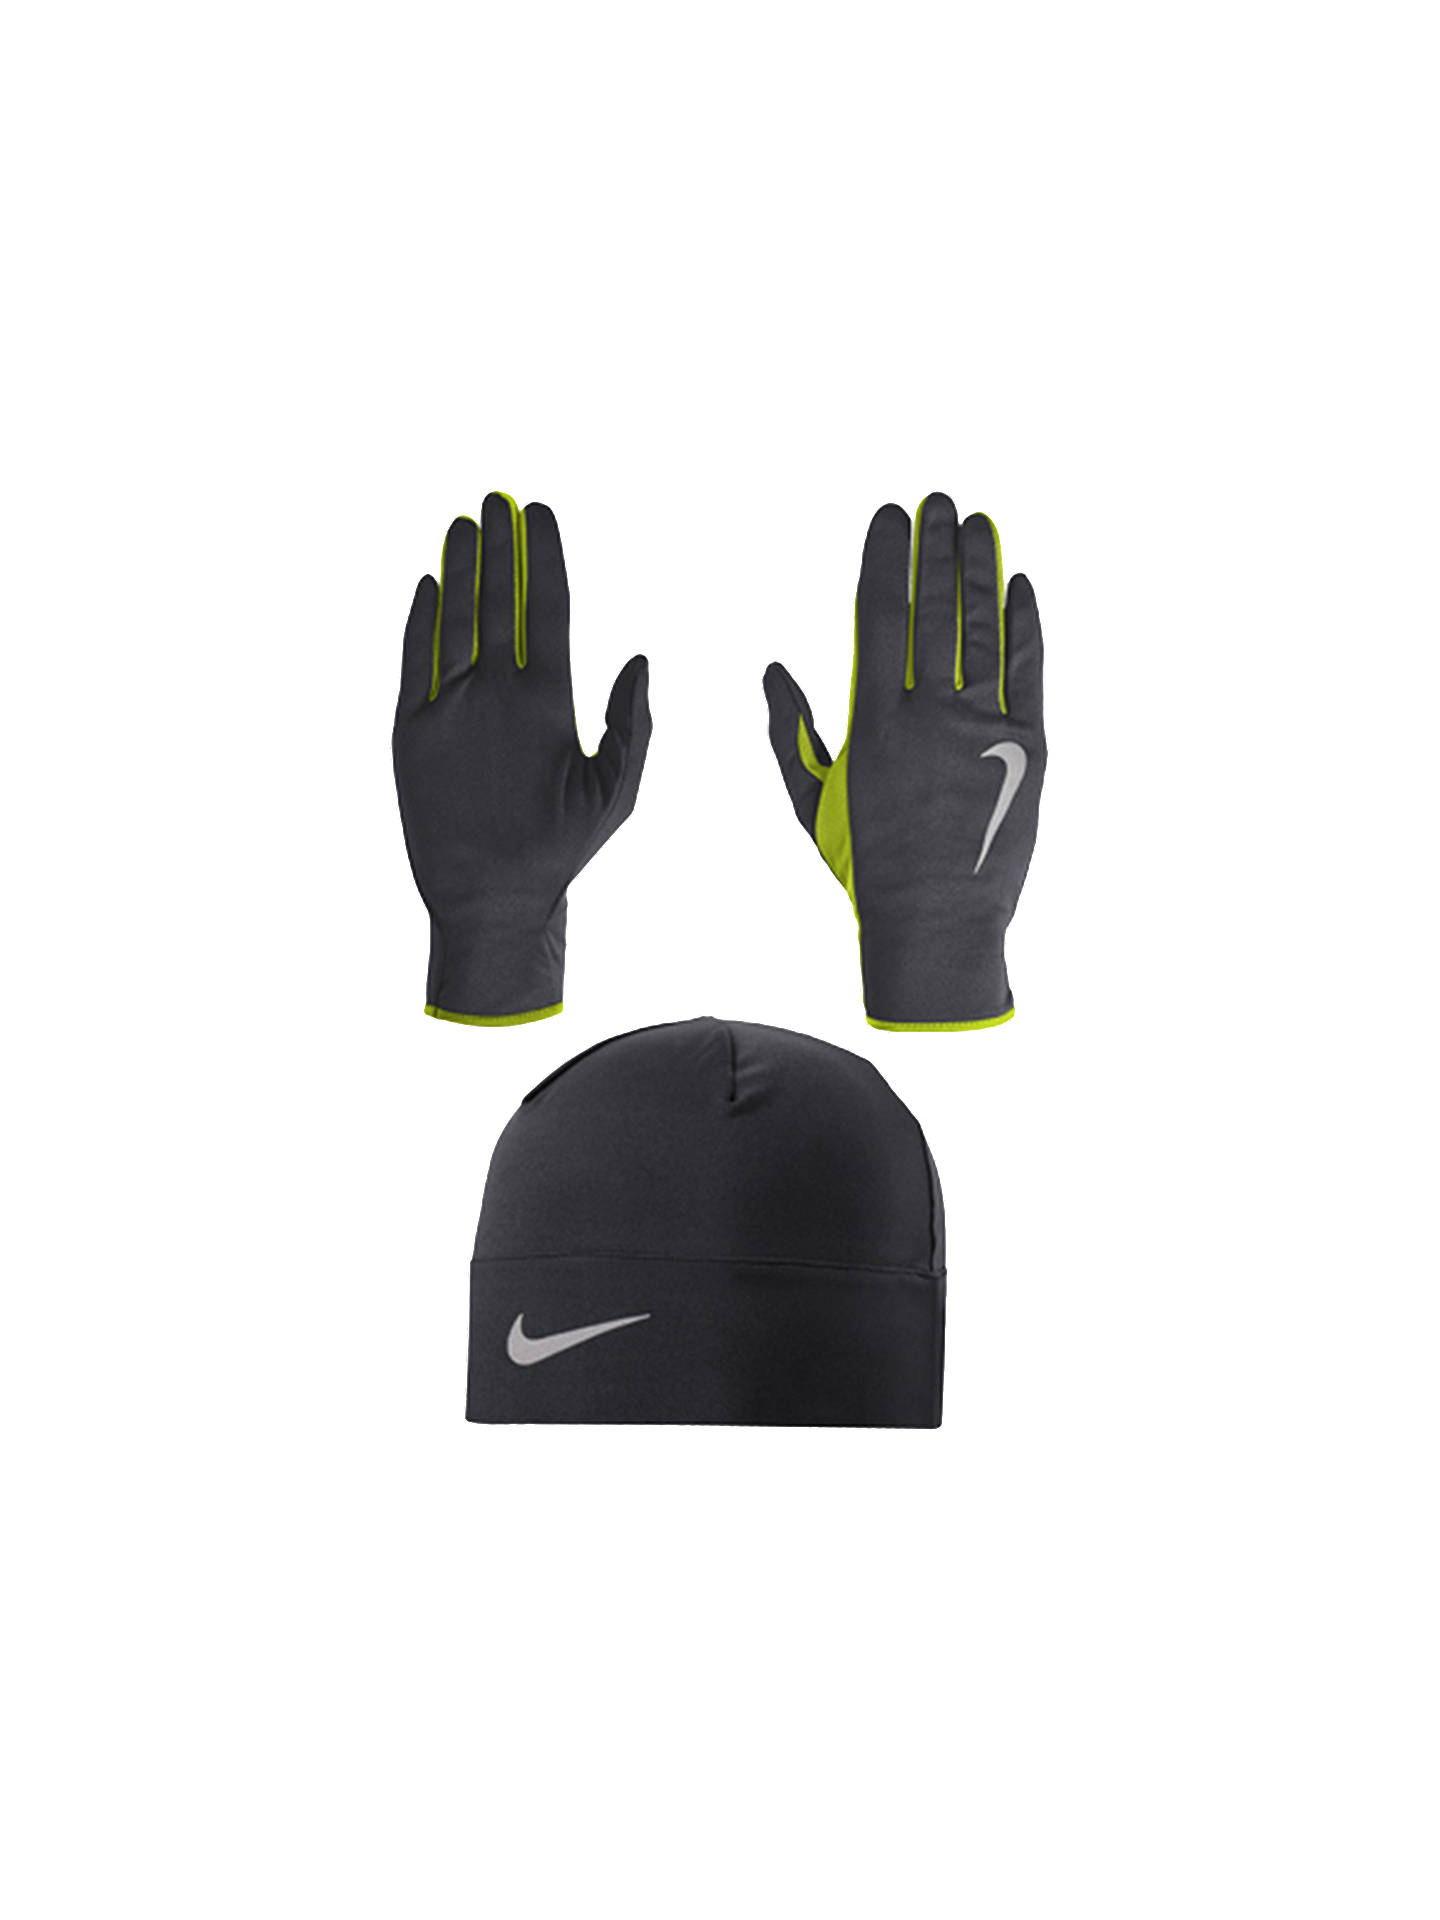 new product 66f4f f643e Buy Nike Dri-Fit Men s Running Beanie Hat and Glove Set, Athracite Volt